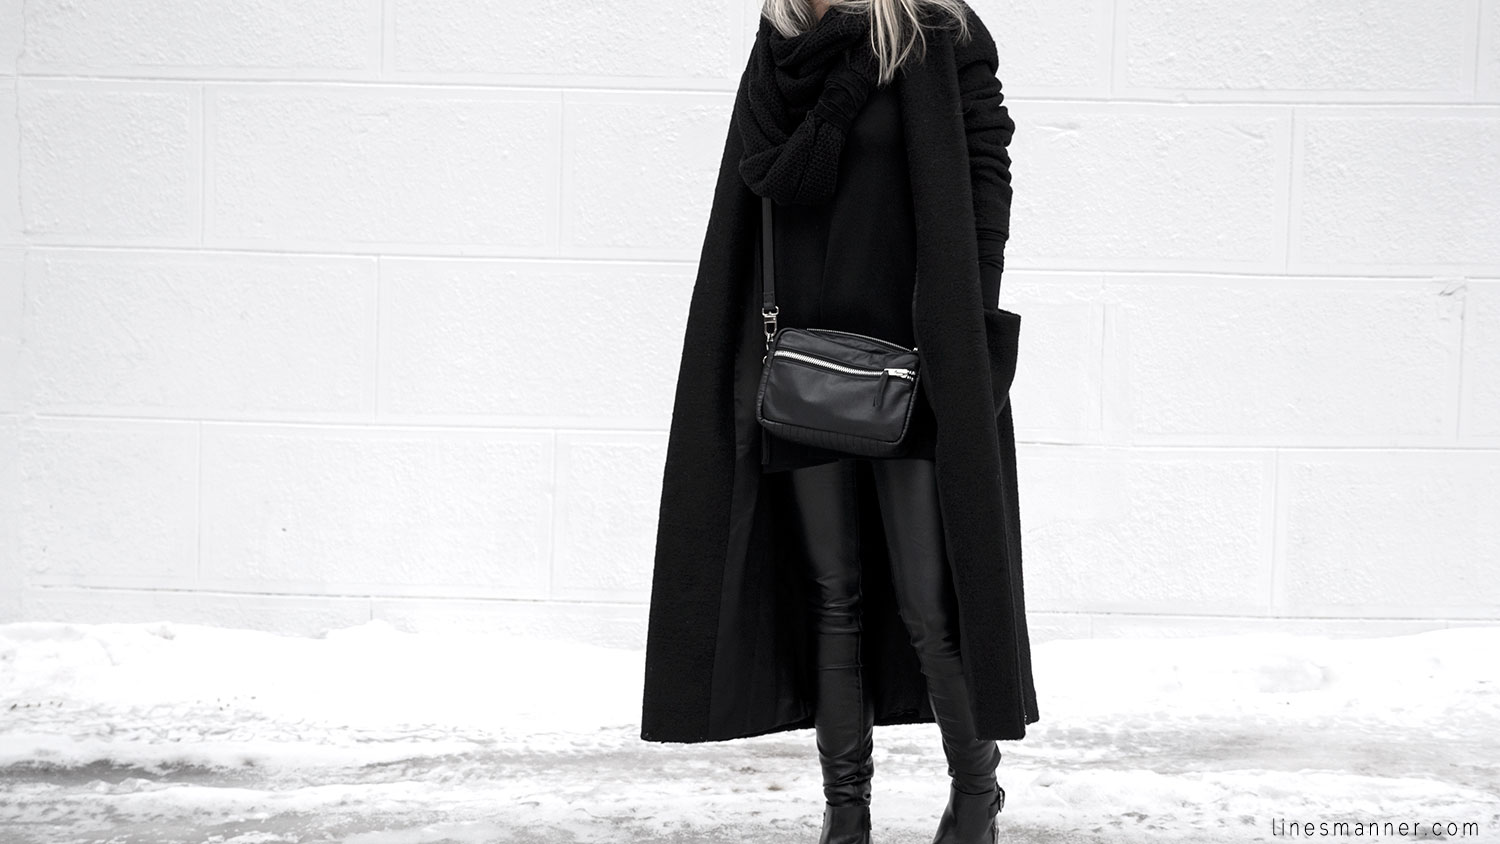 Lines-Manner-All_black_everything-monochrome-essentials-oversize-fit-textures-minimal-details-basics-staples-kayering-bundled-enveloped-silver-leather-1